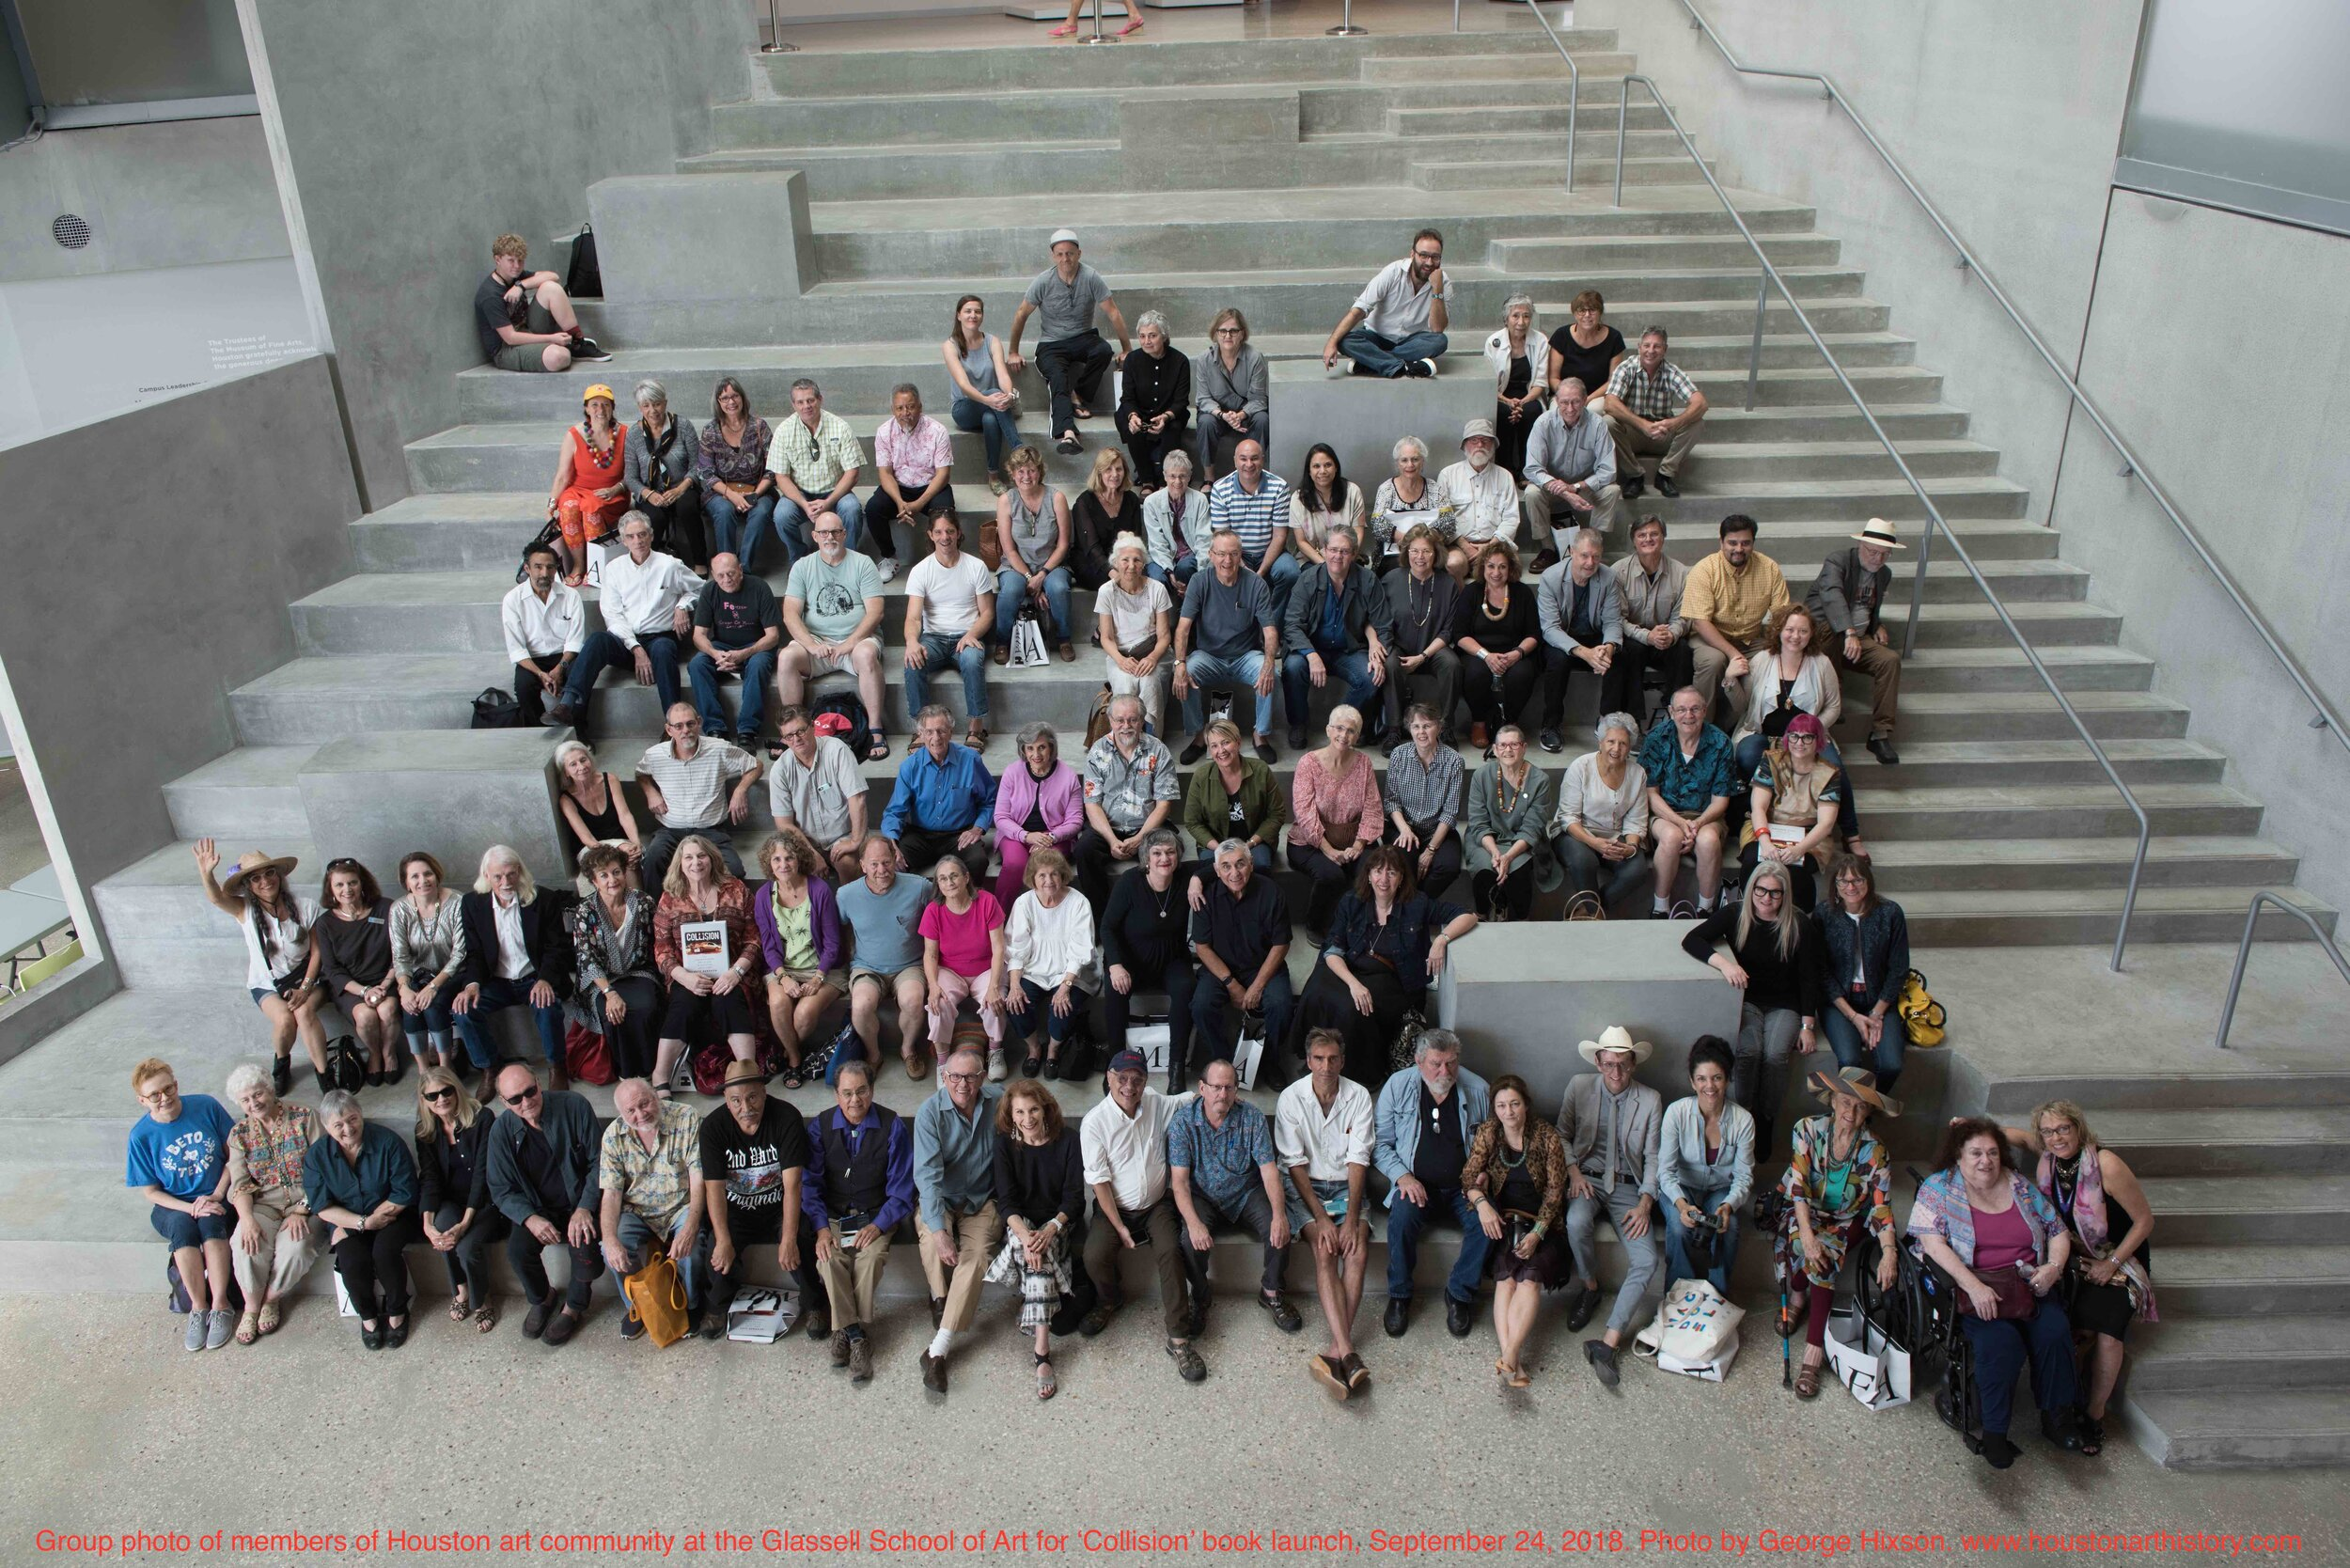 Group photo of Houston artists at  Collision  book launch, The Glassell School of Art, September 23, 2018. Photo by George Hixson.